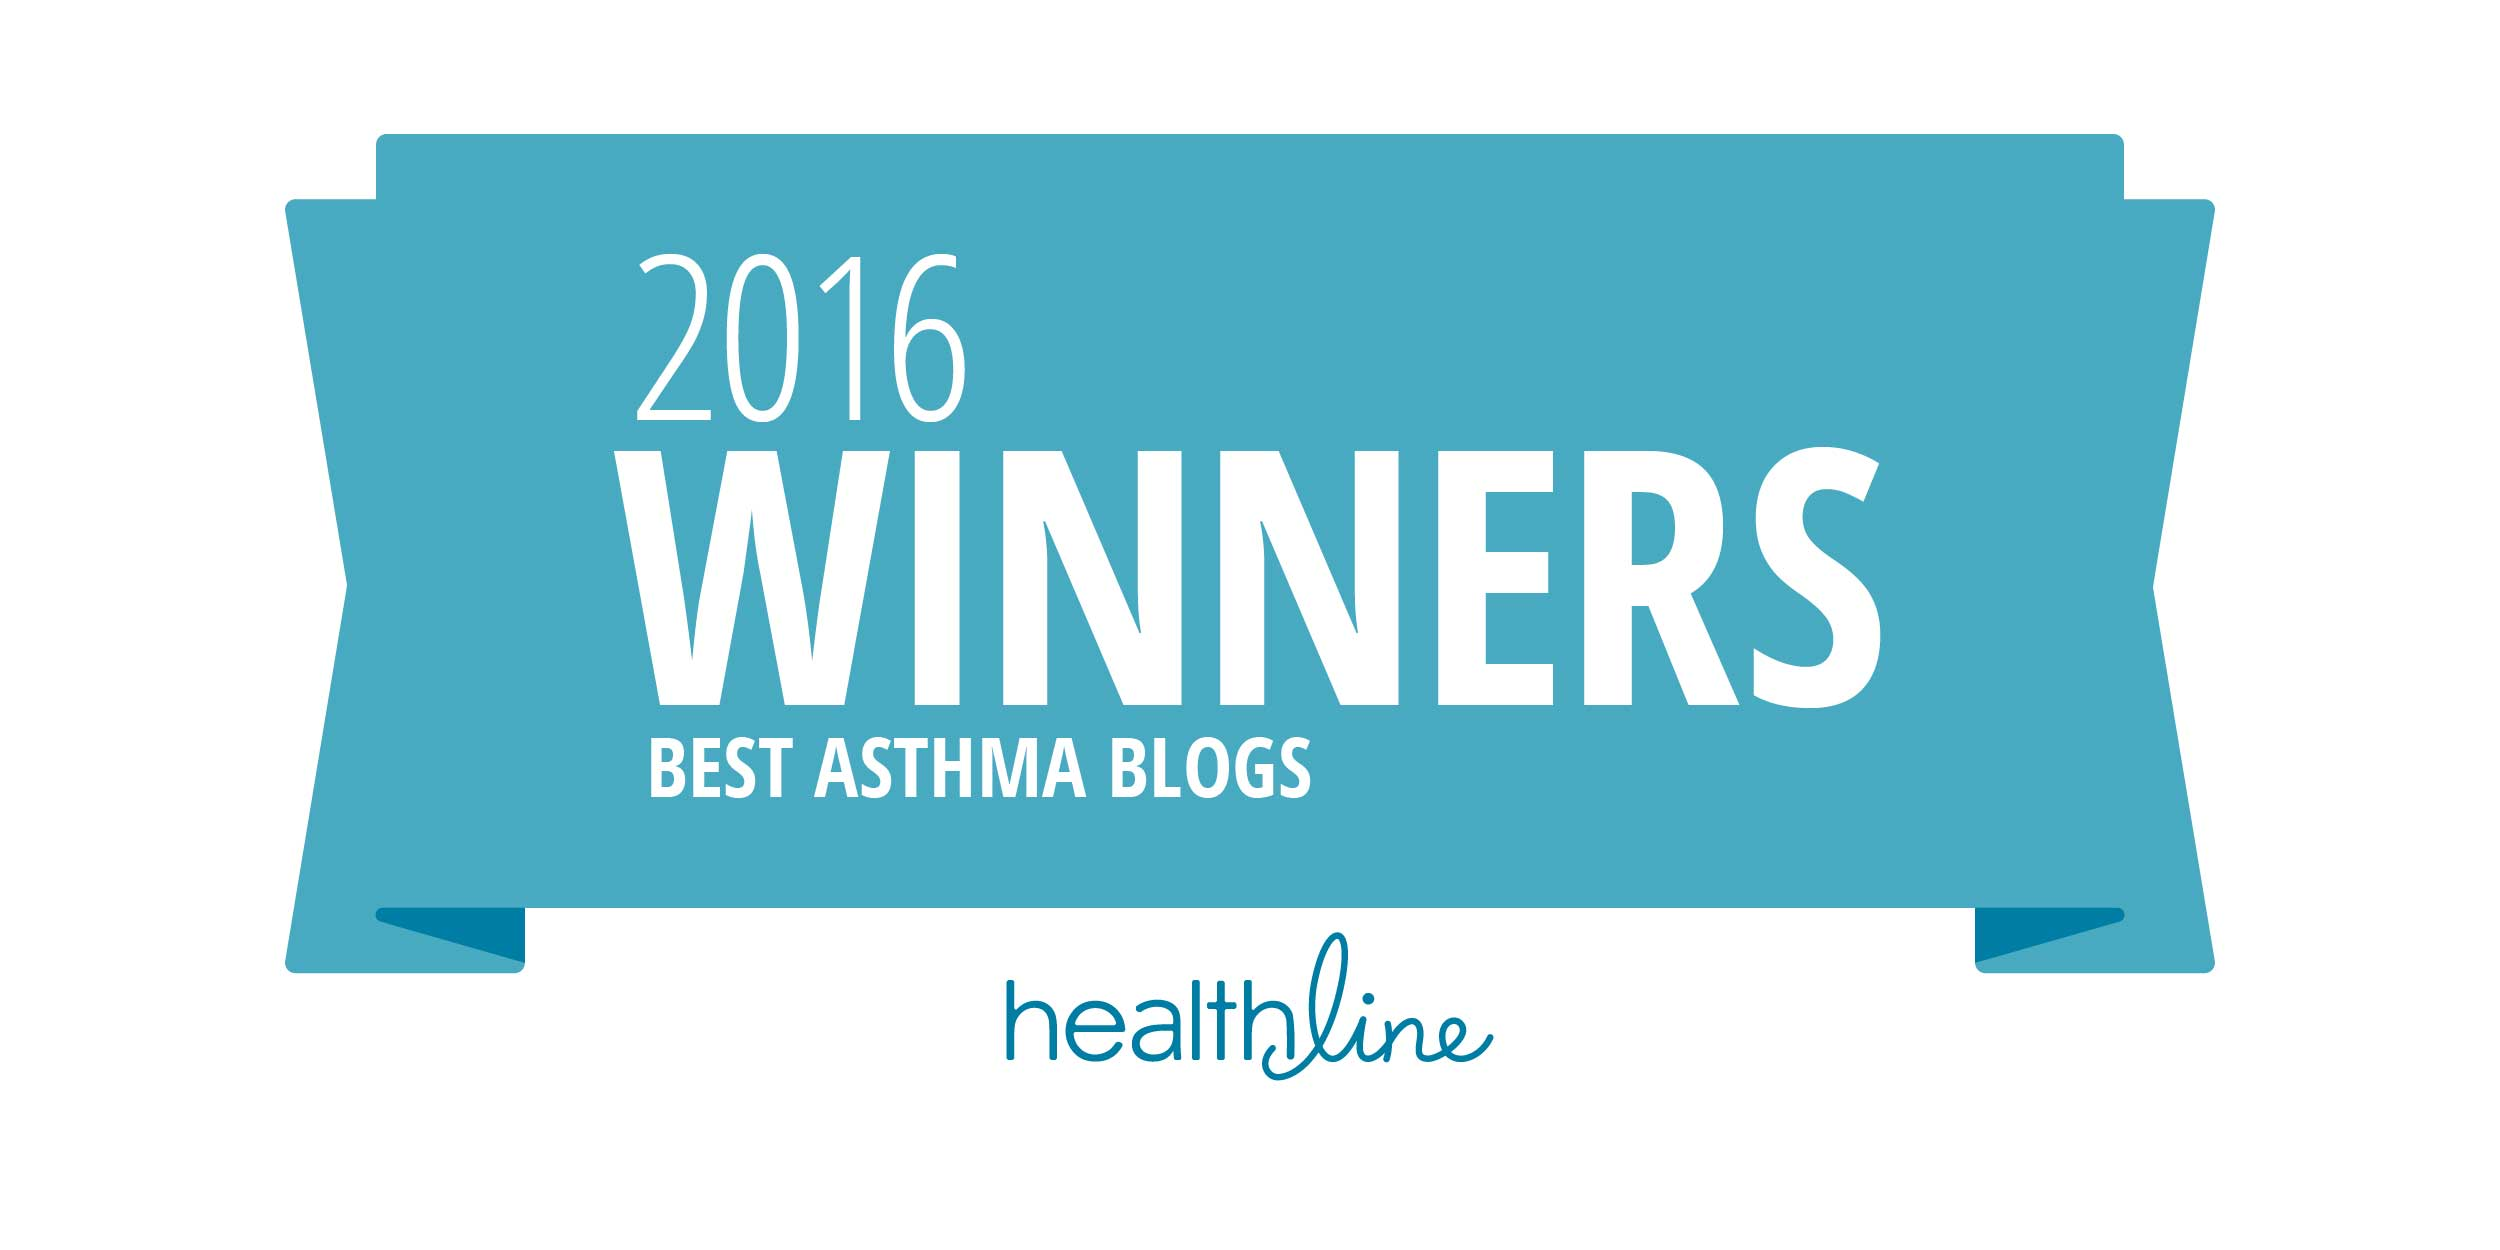 The Best Asthma Blogs of the Year